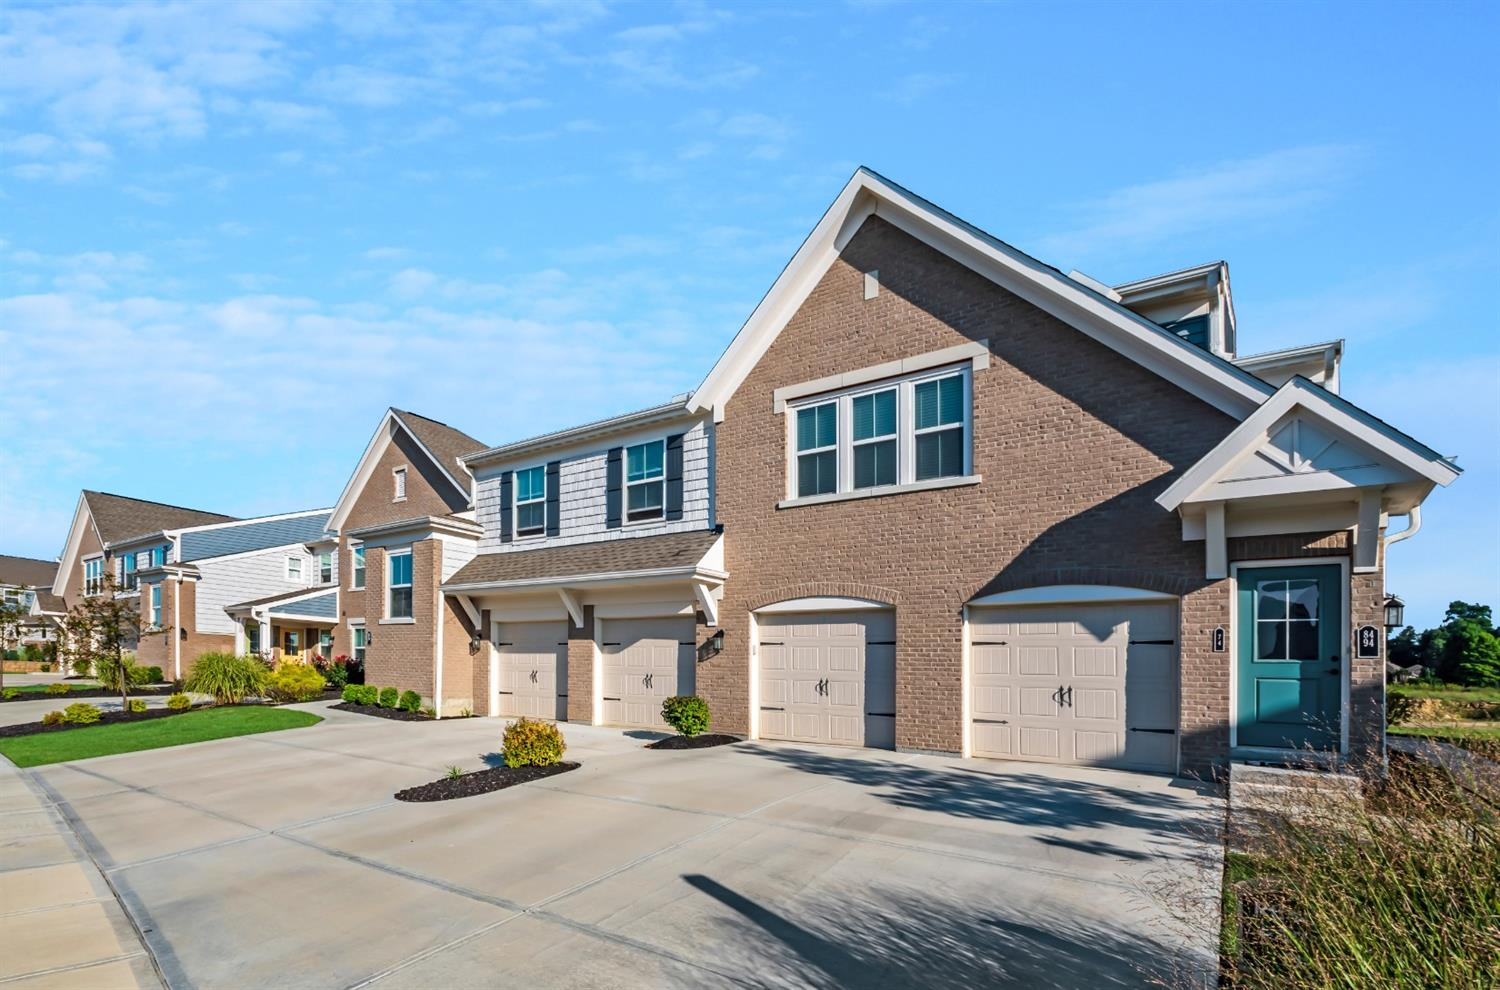 Property for sale at 96 Water Lily Drive Unit: 20204, Springboro,  Ohio 45039